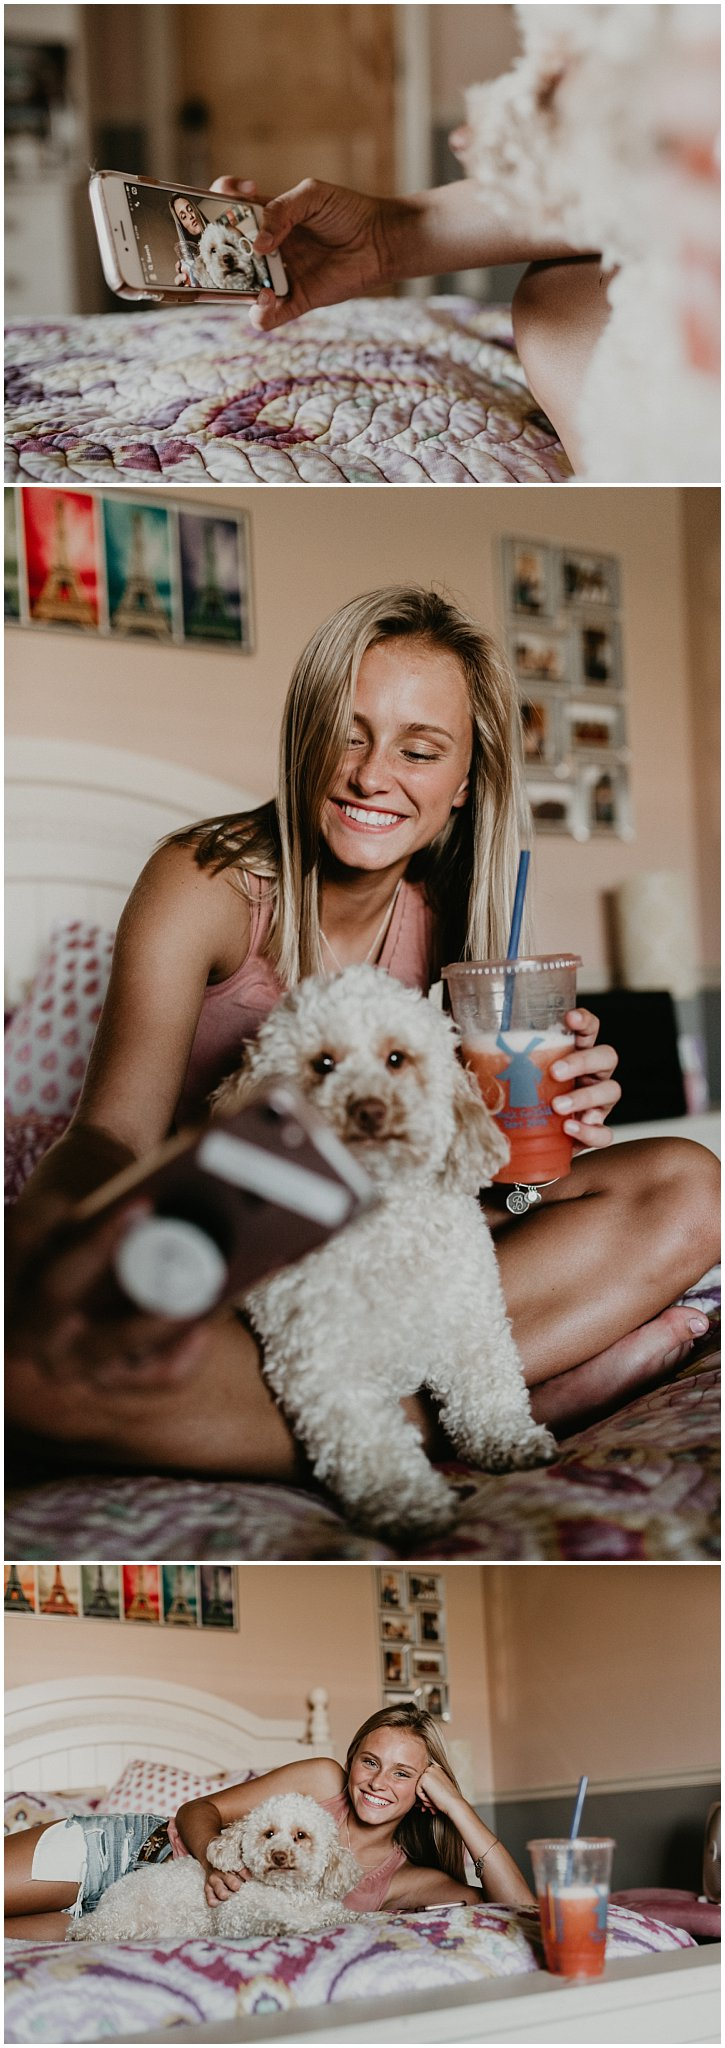 Boise Senior Photographer Makayla Madden Photography Dutch Bros Dutch Brothers Senior Pics Puppy Dog Selfie Unique Fun Senior Photos